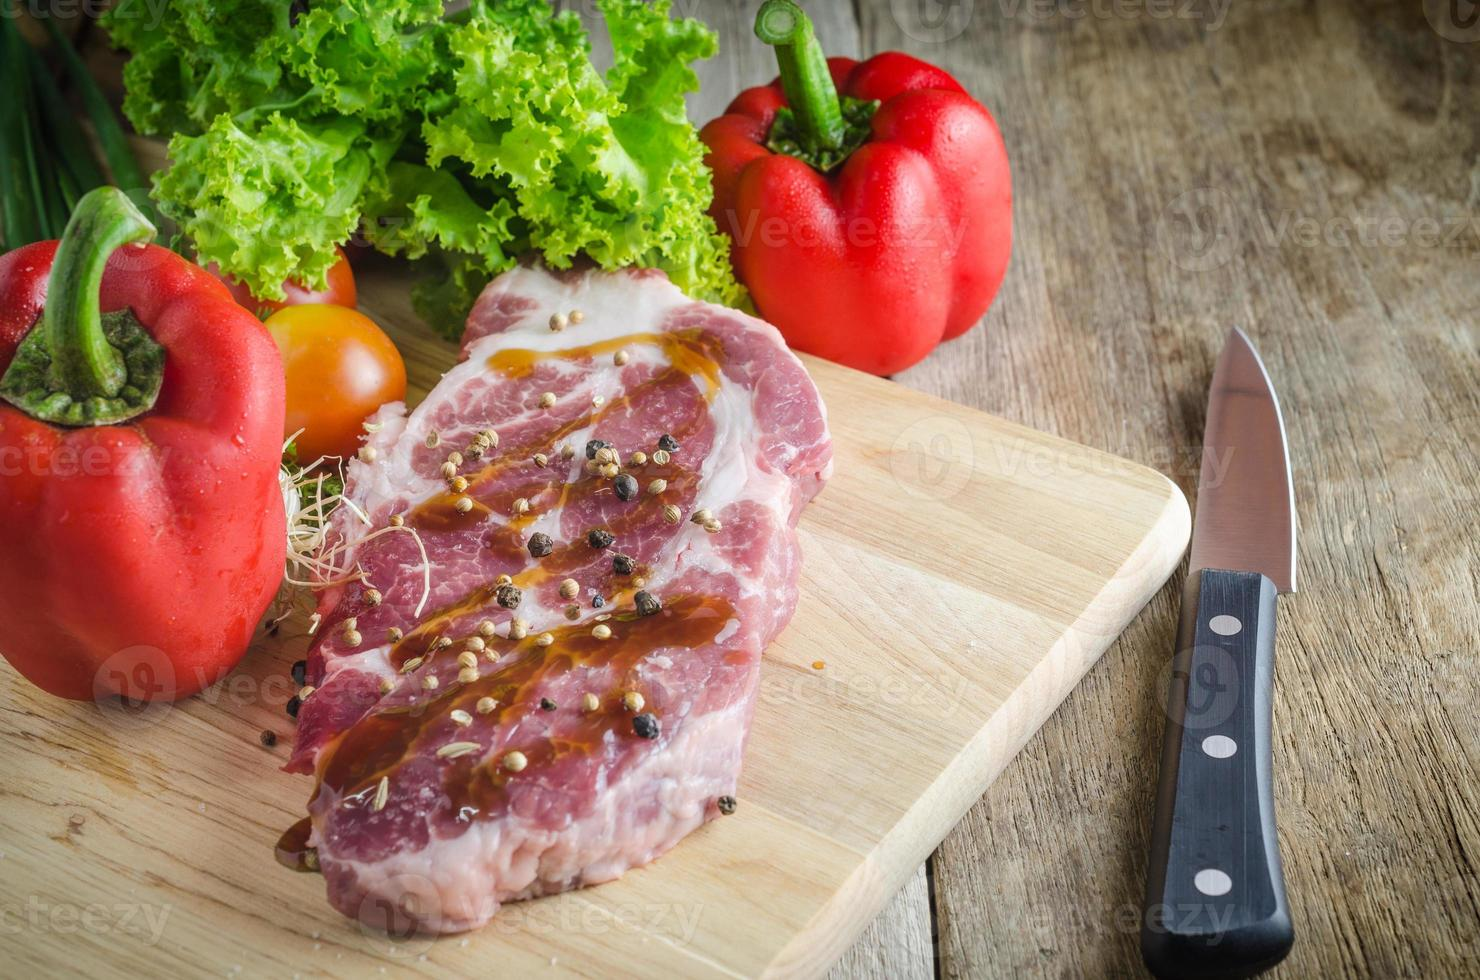 Raw pork on cutting board and vegetables knives. photo